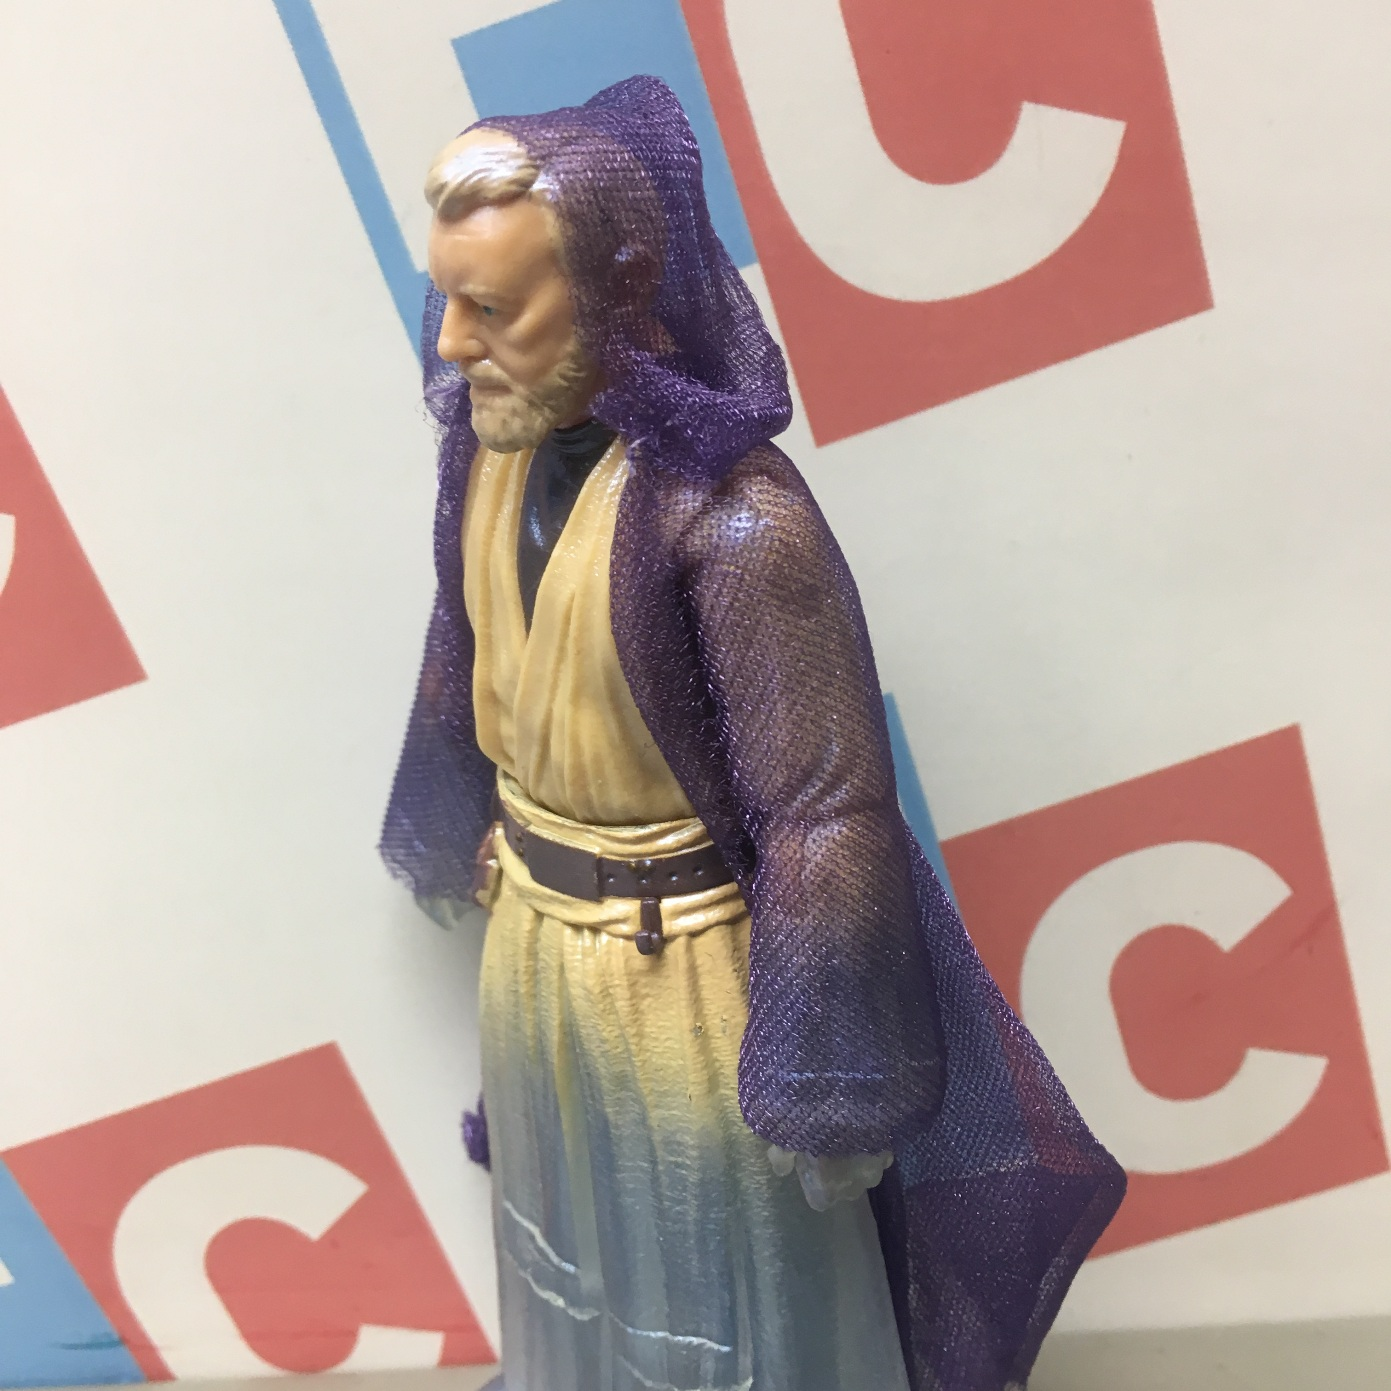 Obi-Wan Kenobi Force Spirit (Walgreens)